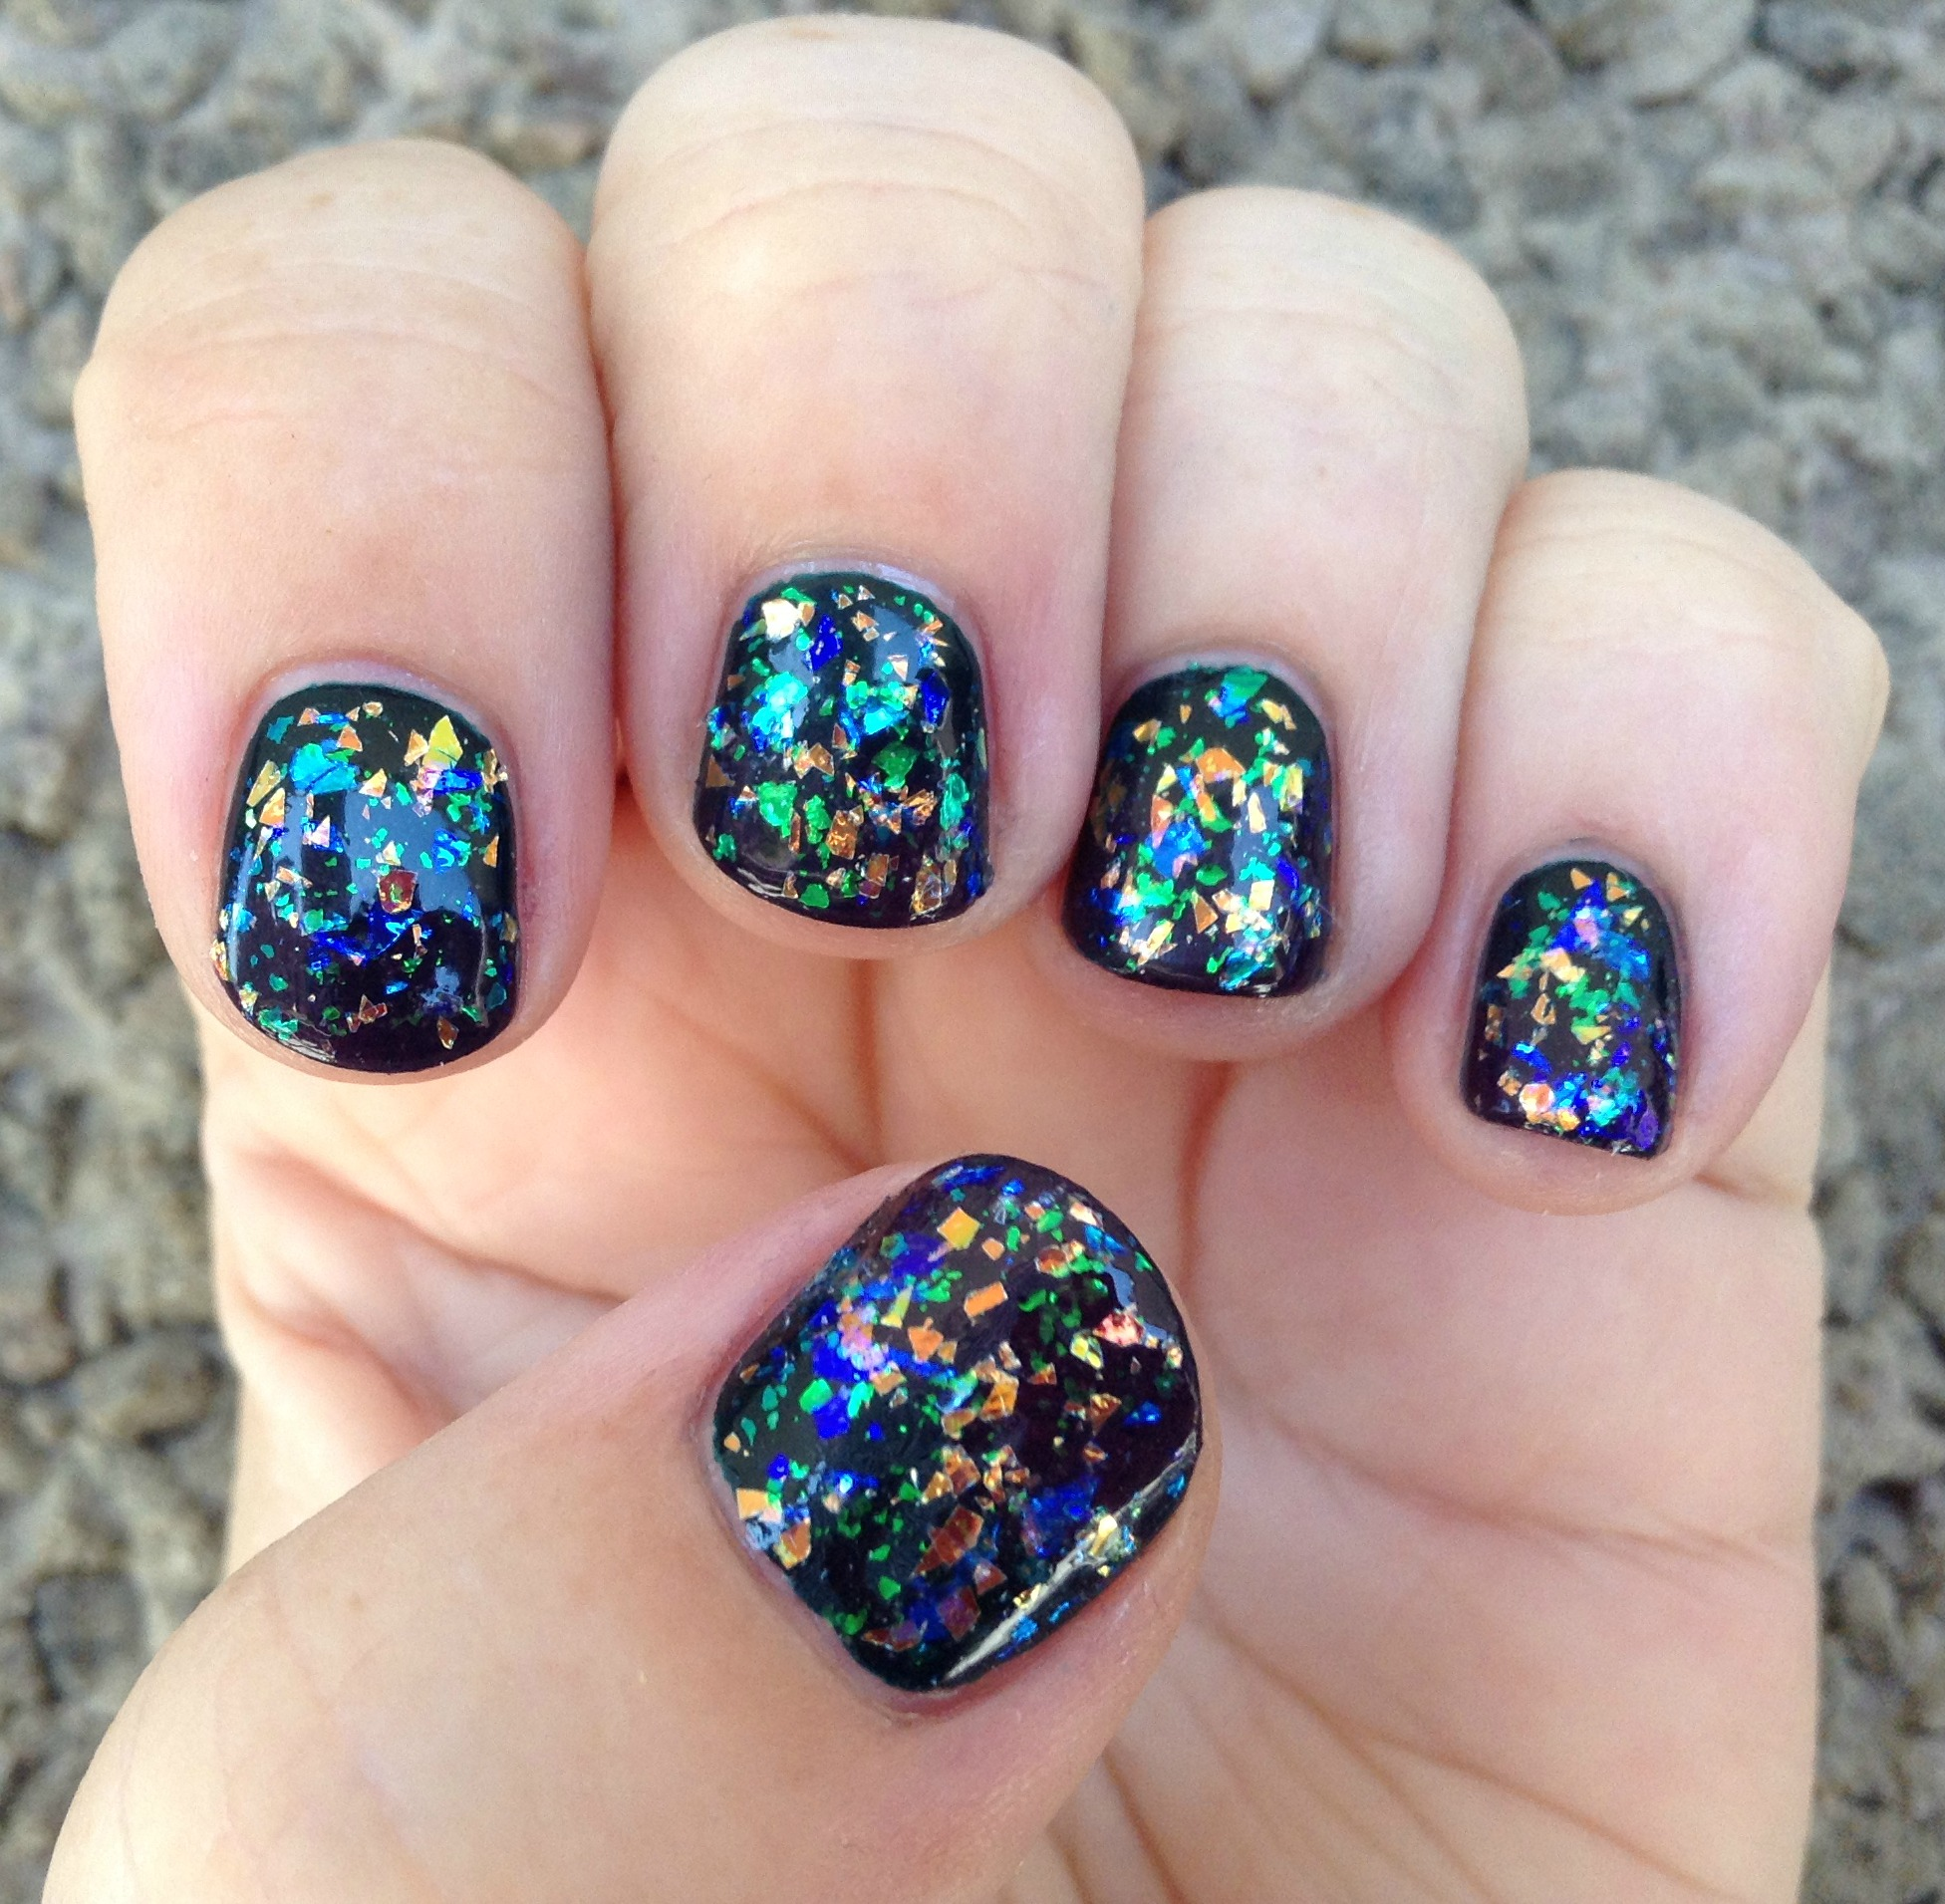 Nails Inc. Special Effects | Finger Candy